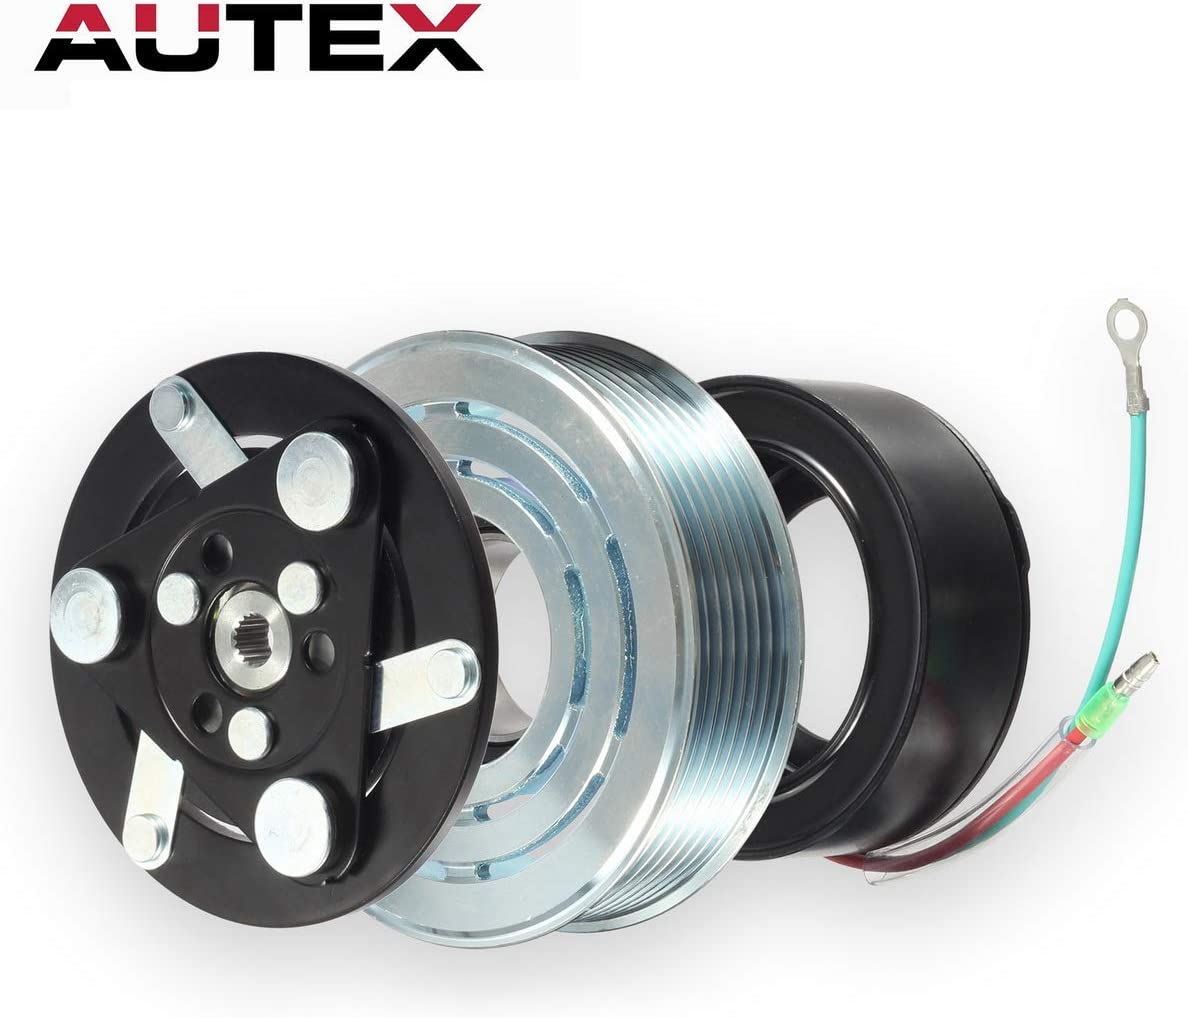 AUTEX AC A//C Compressor Clutch Coil Assembly Kit 38800RZYA010M2 80221SNAA01 8851502200 Replacement for HONDA CR-V 2007 2008 2009 2010 2011 2012 2013 2014